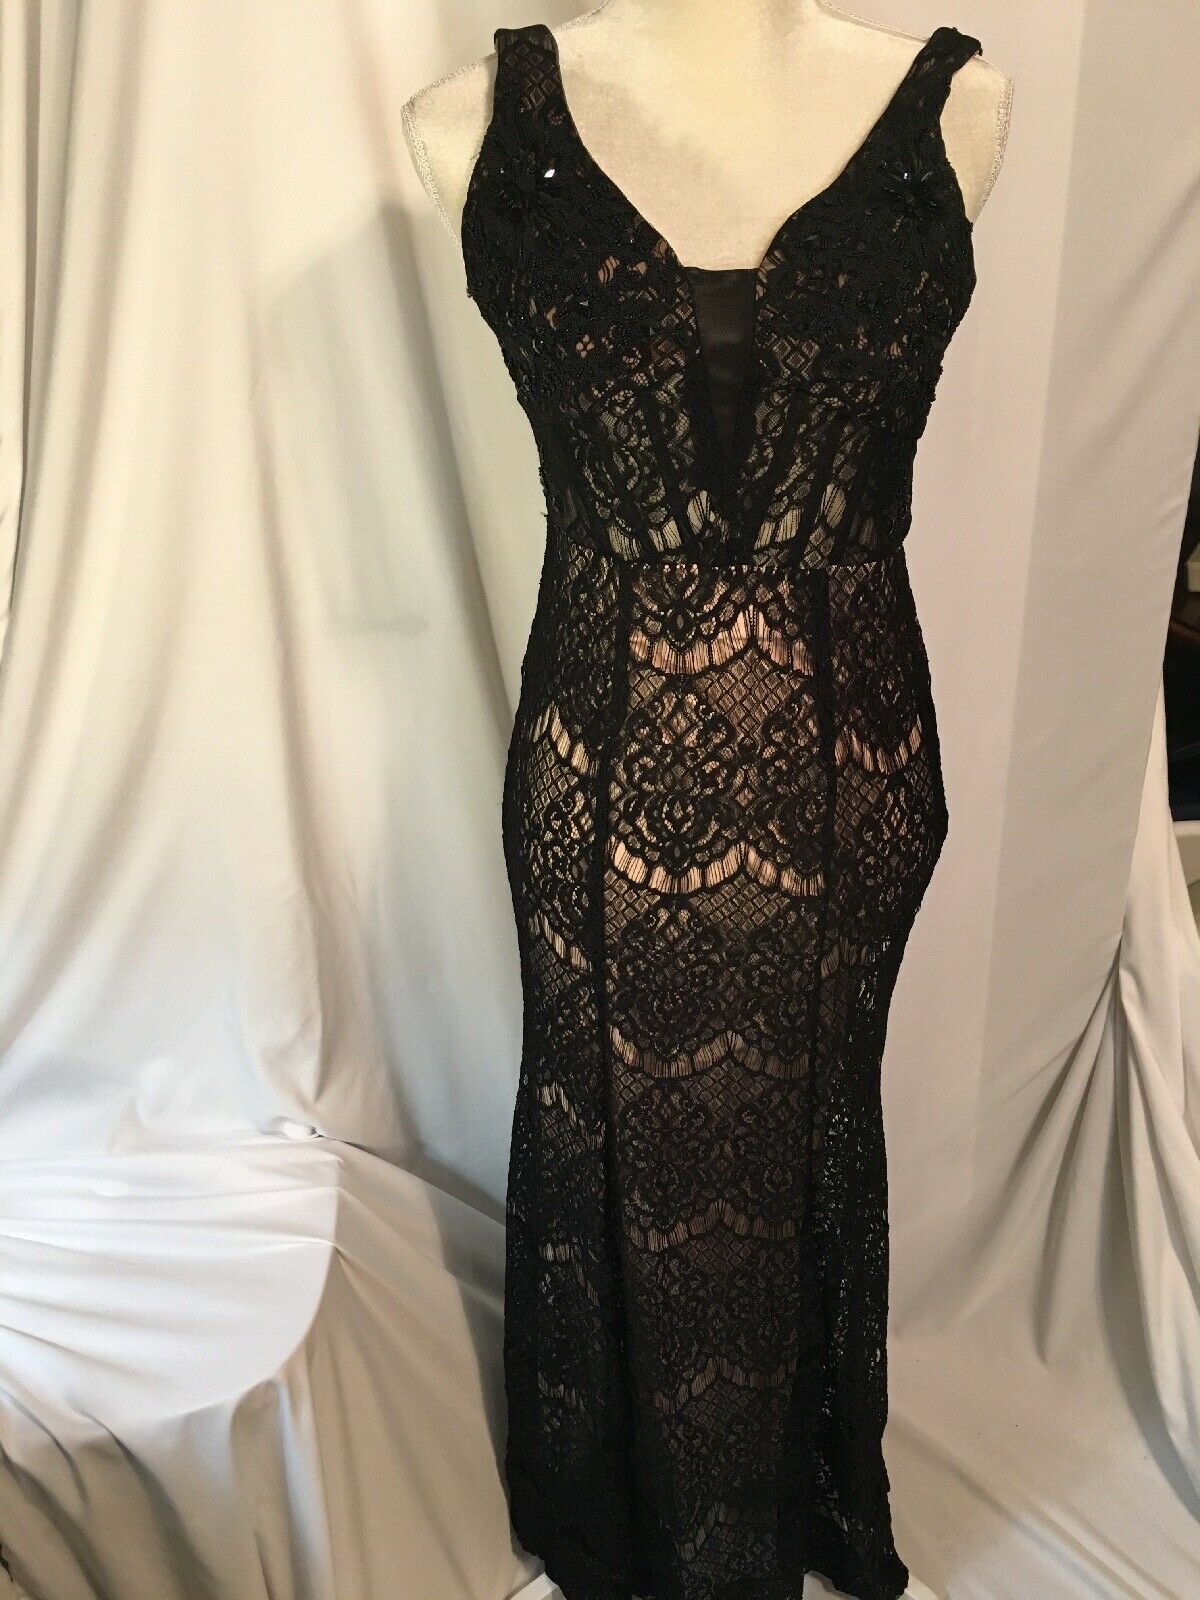 Prom Dress, Black Lace, Full Length, Size: Junior 1 - Great Cond